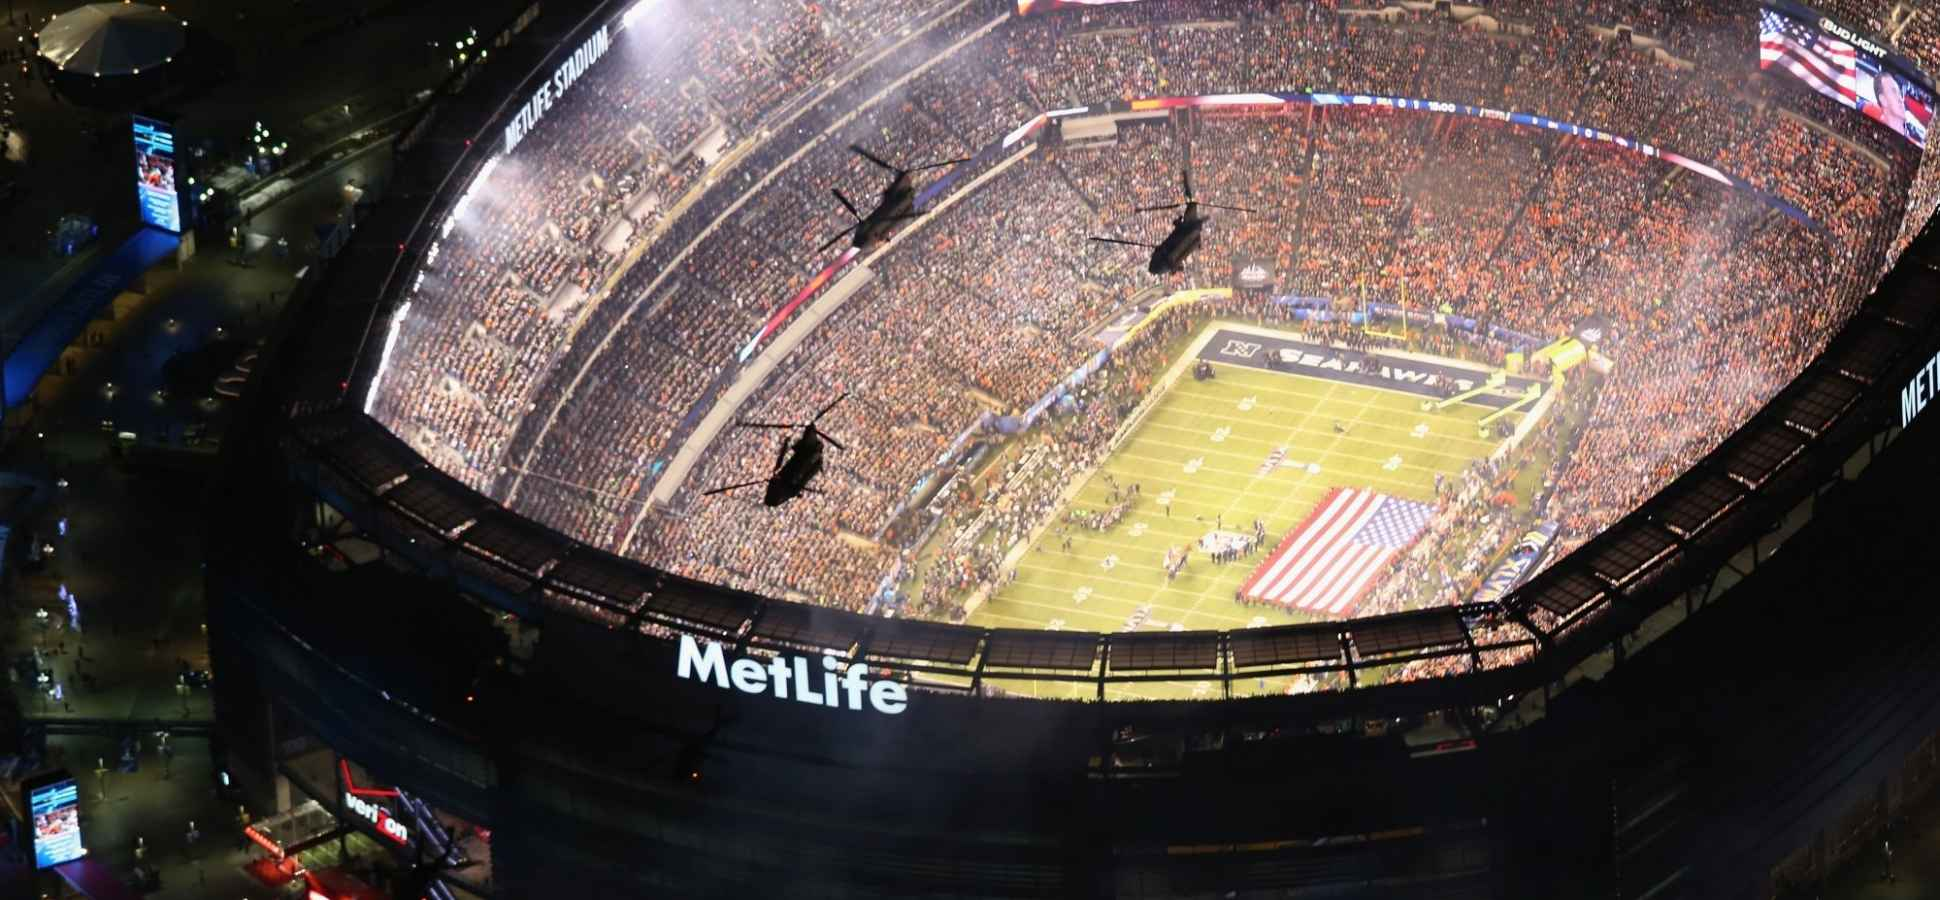 Don't Even Think About Flying Your Drone Near the Super Bowl